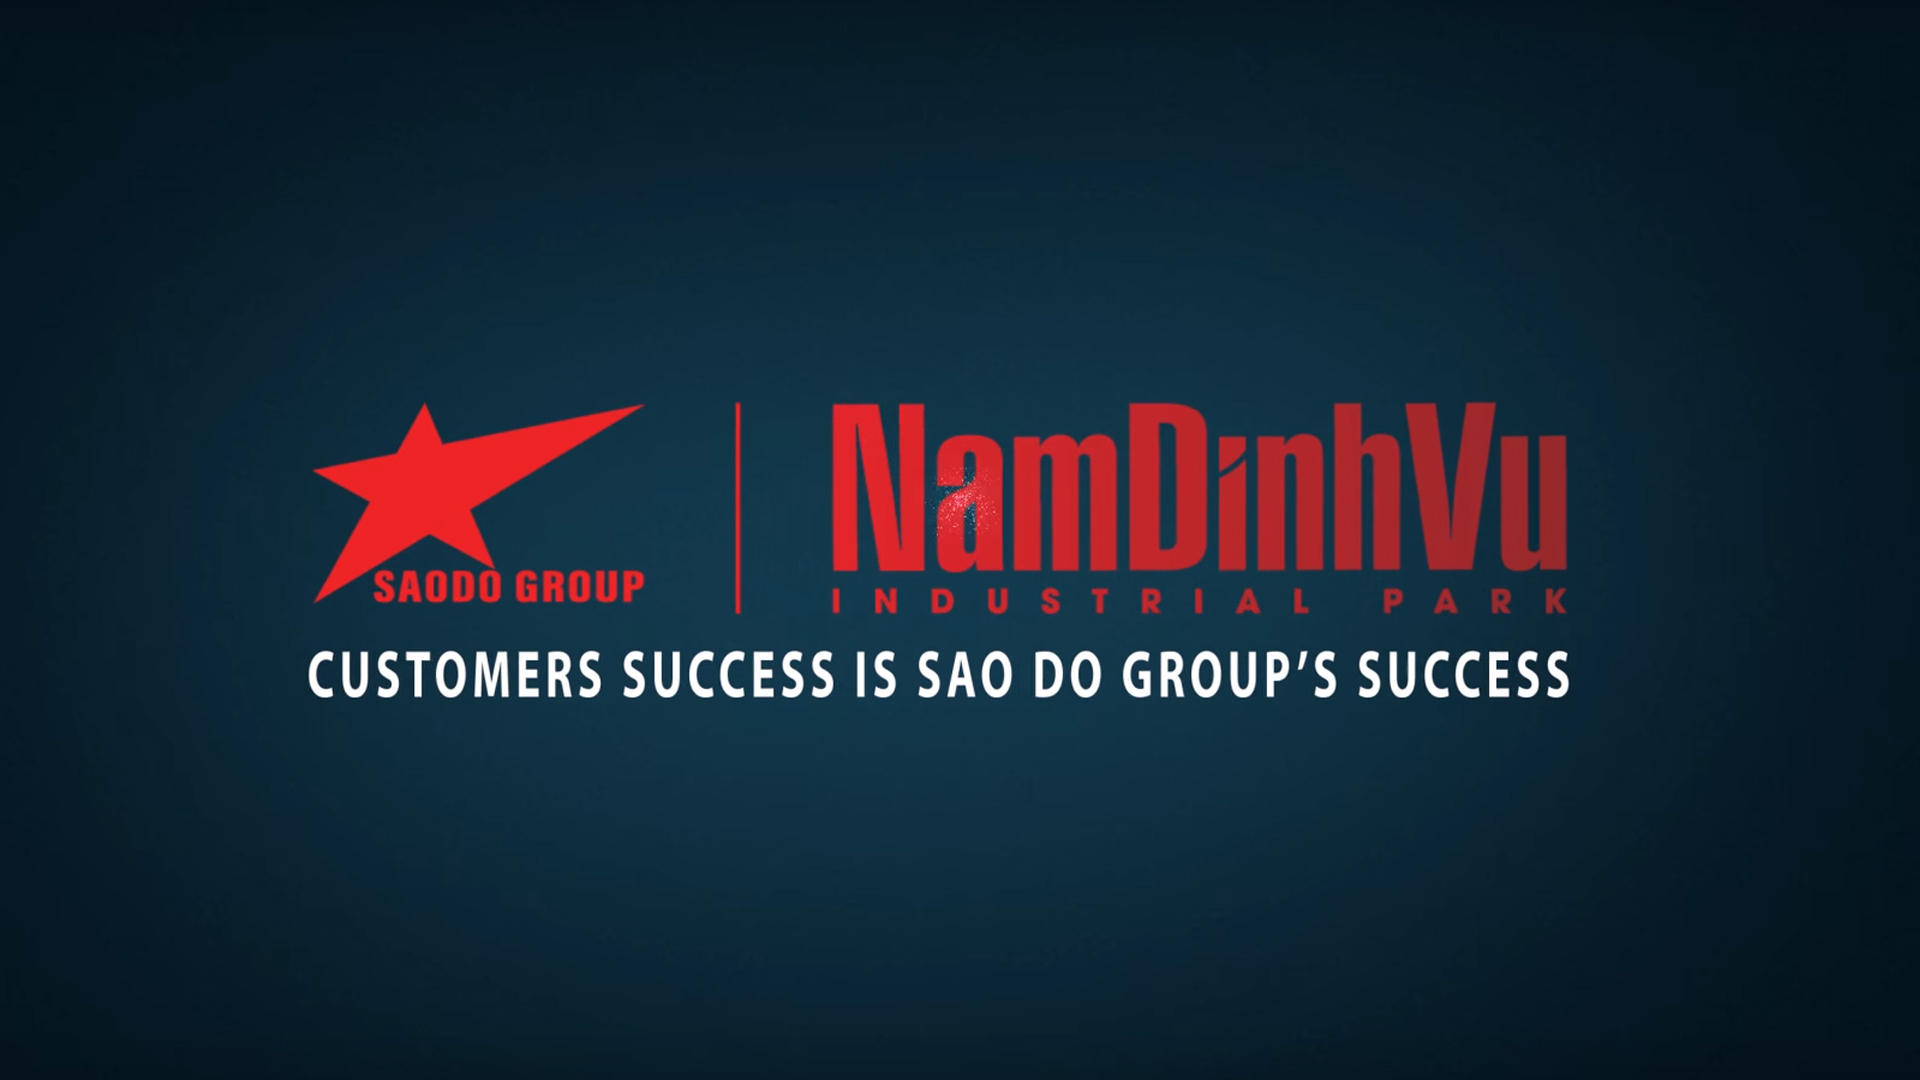 [Cảng Nam Đình Vũ] Customers Success Is Sao Do Group's Success